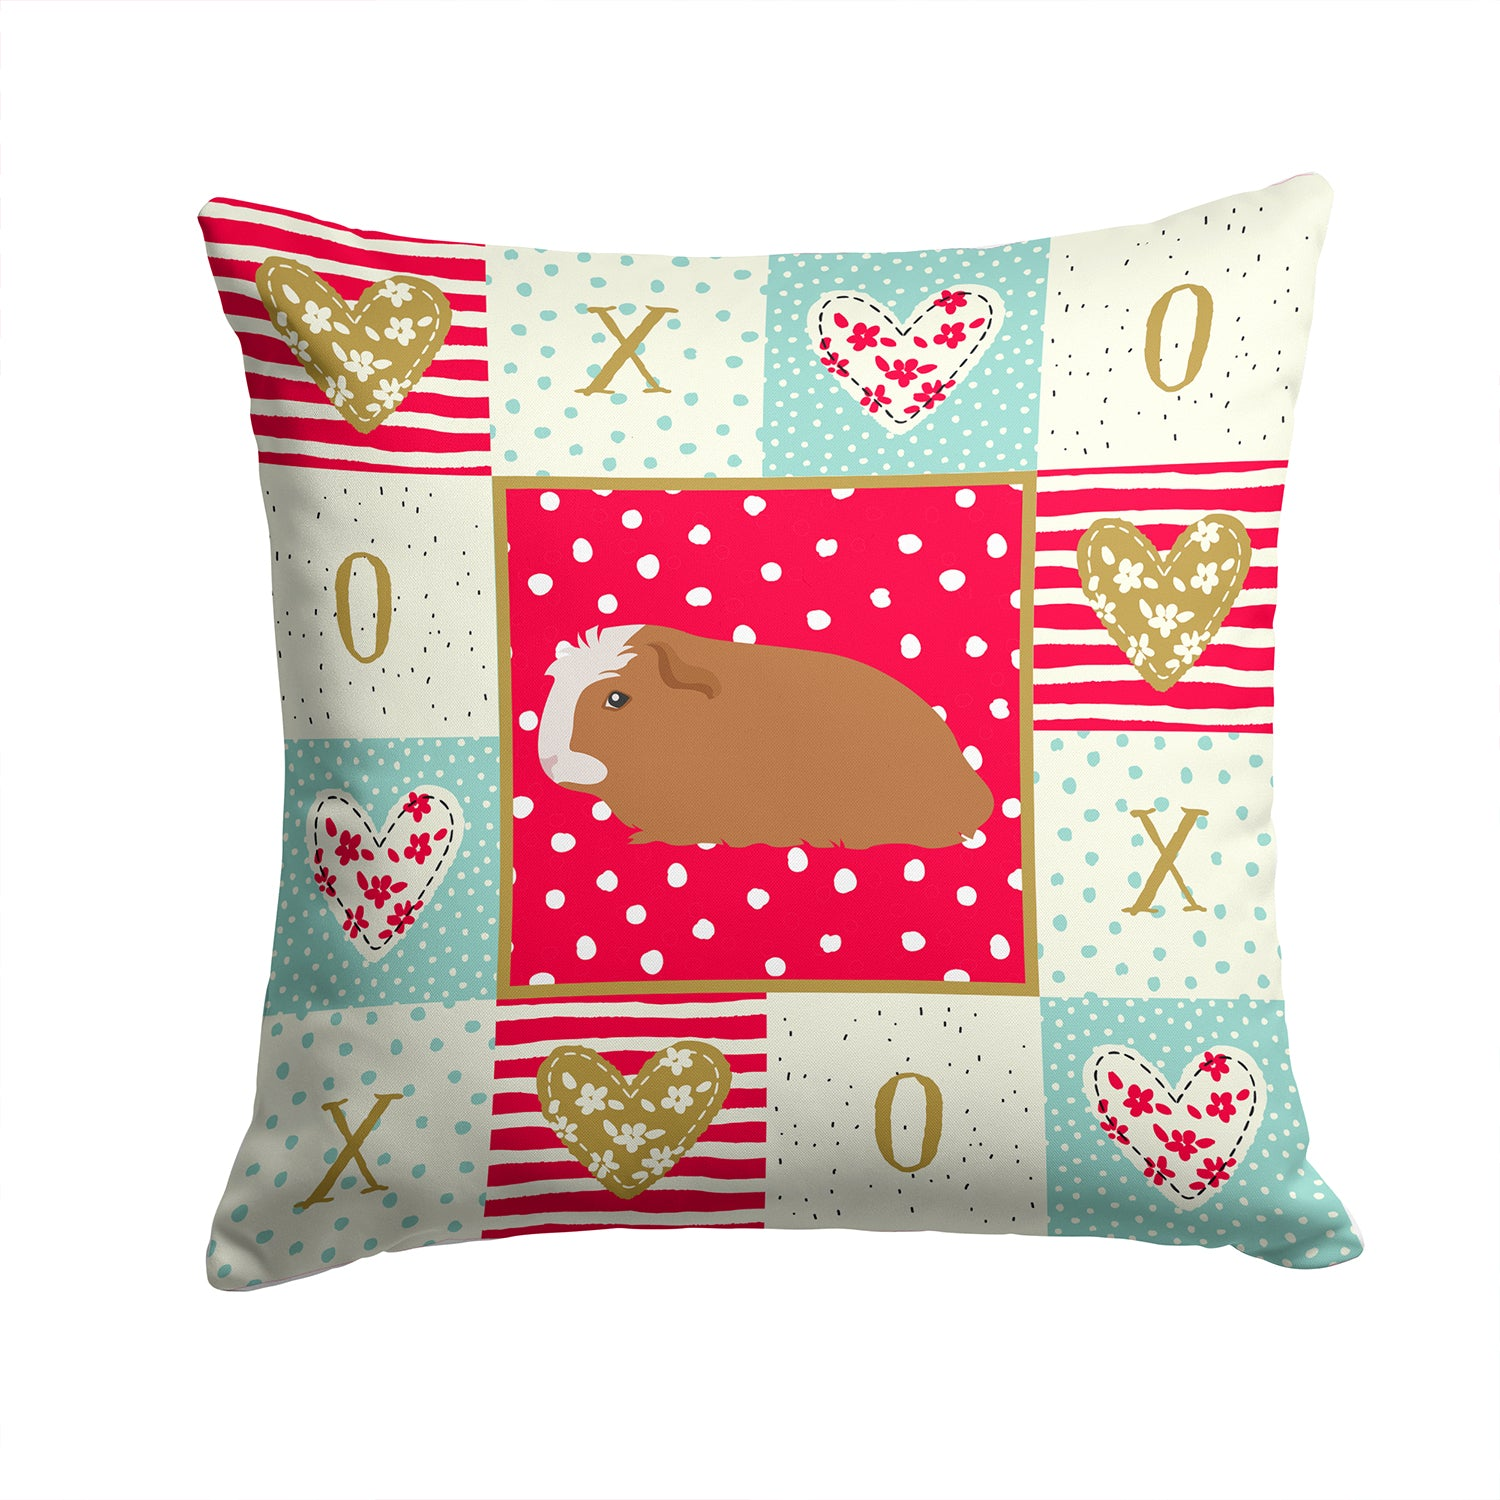 Crested Guinea Pig Love Fabric Decorative Pillow CK5428PW1414 by Caroline's Treasures